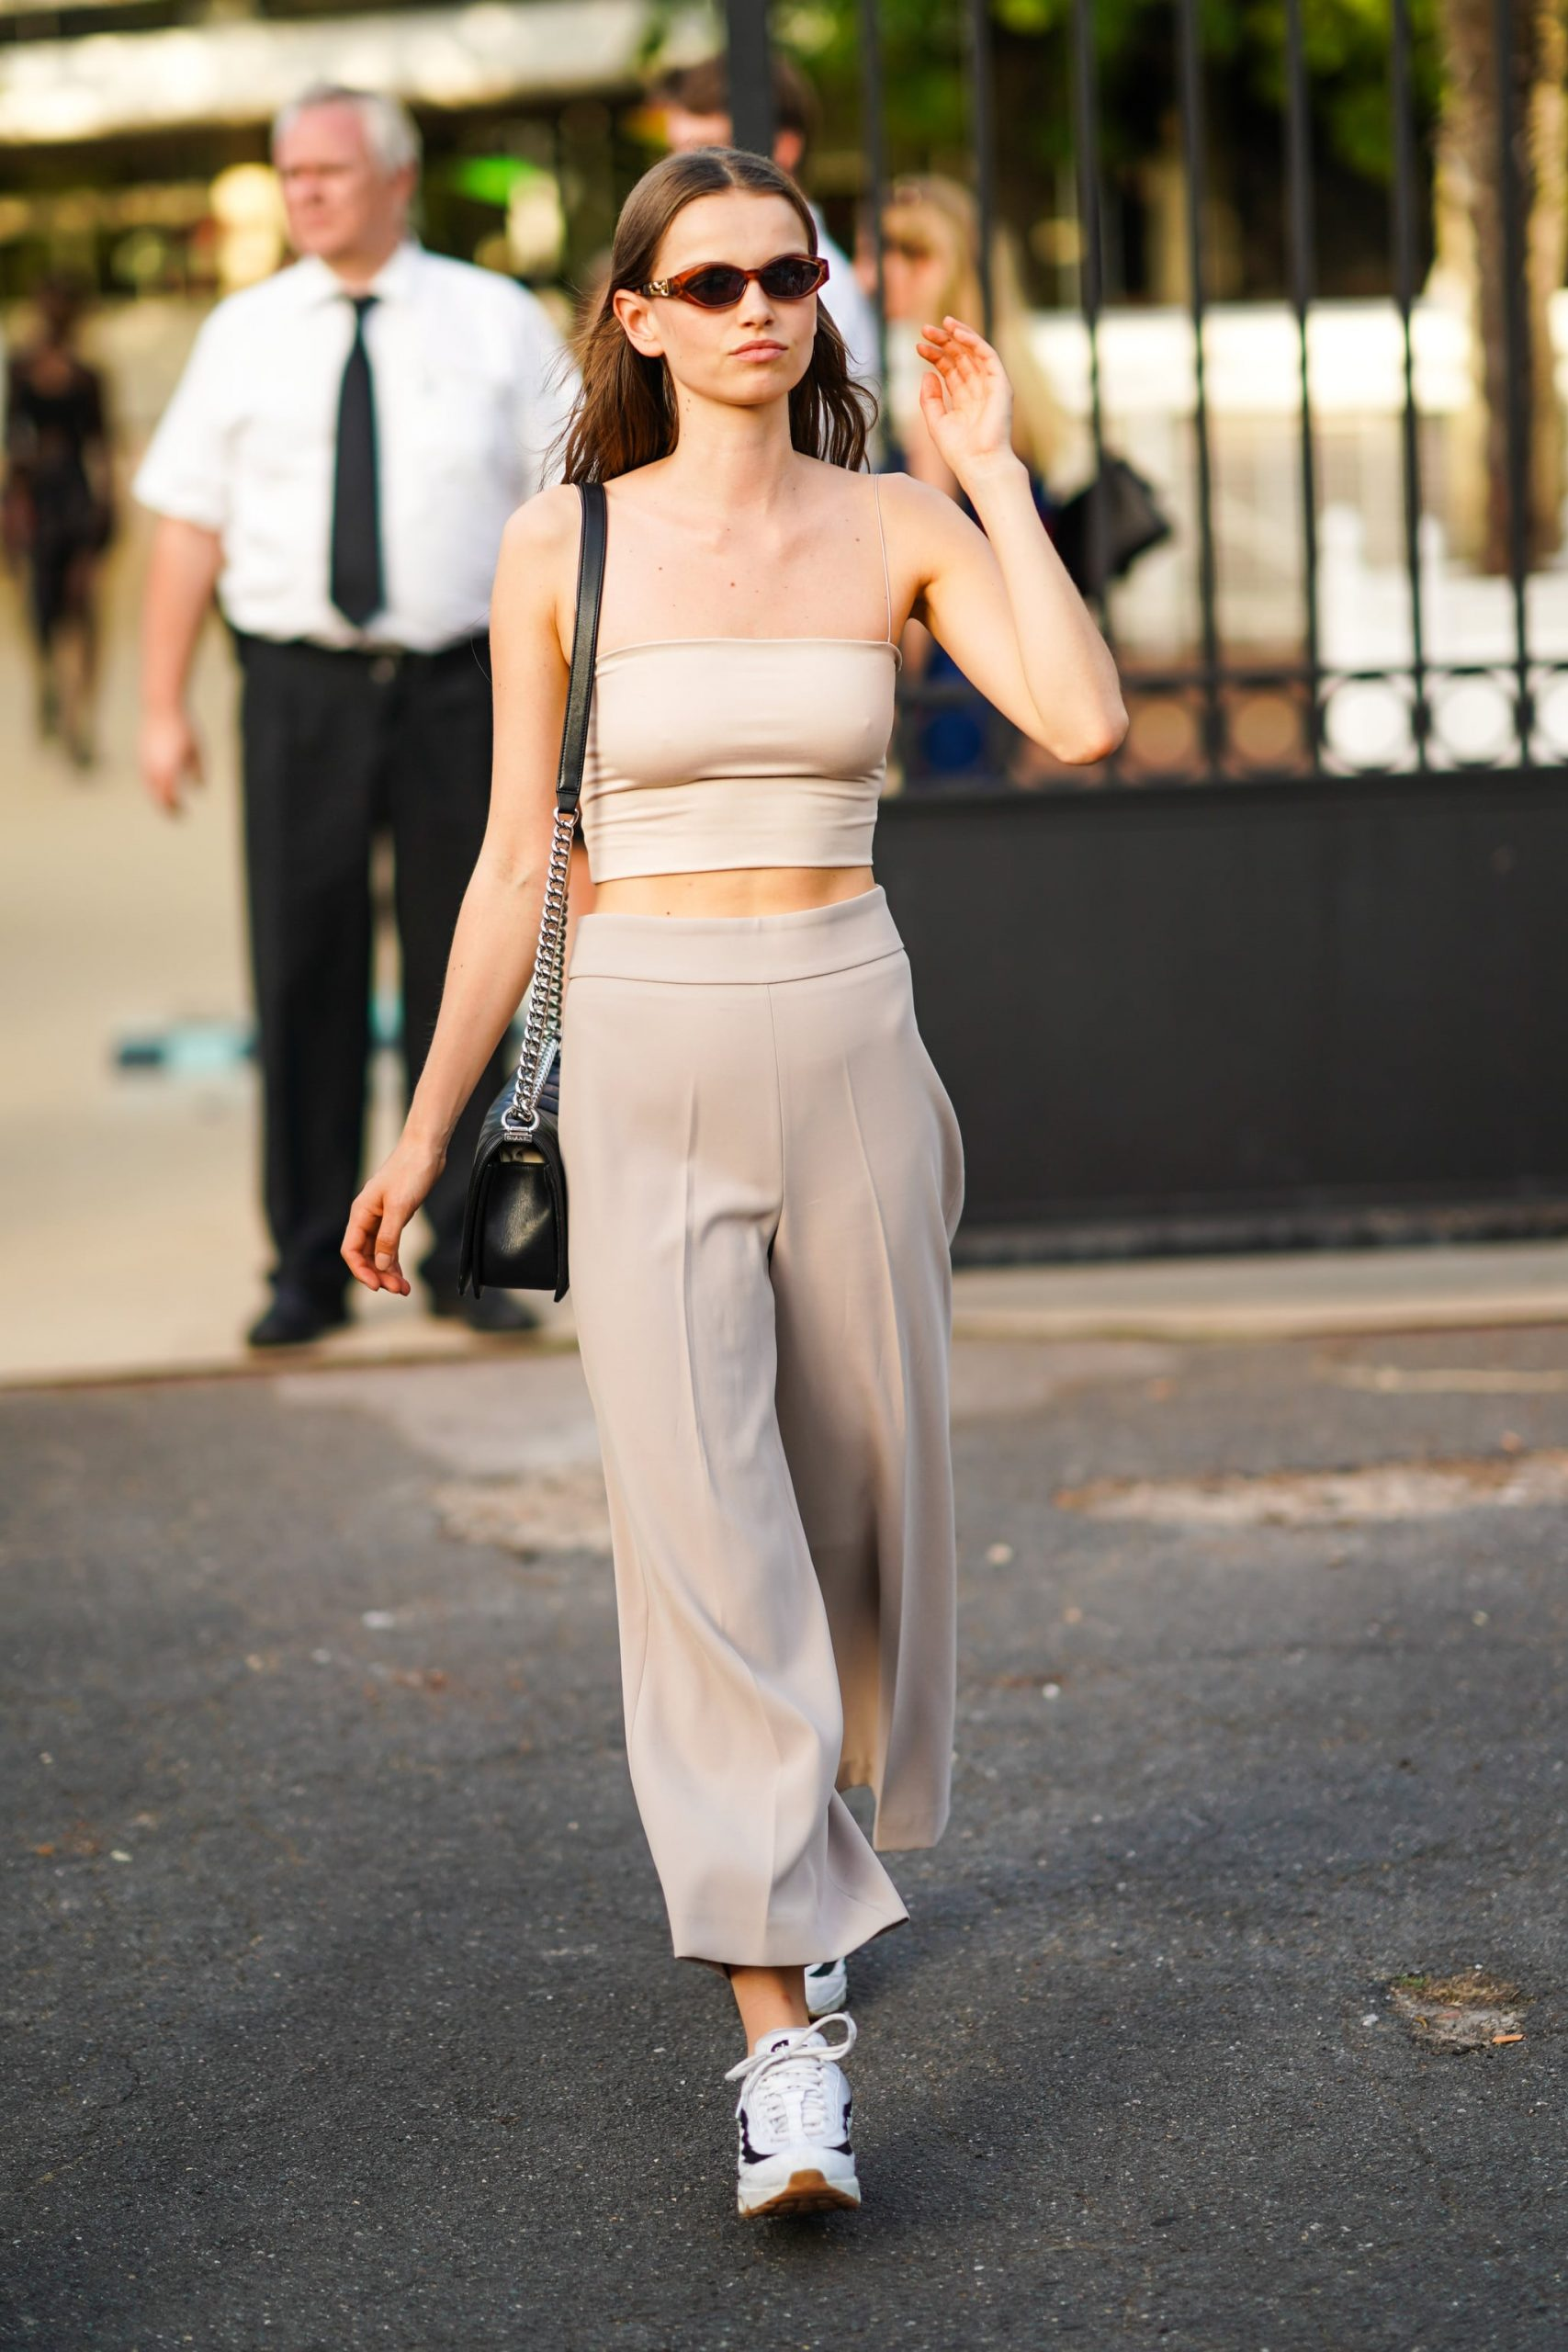 How To Wear White Tube Top